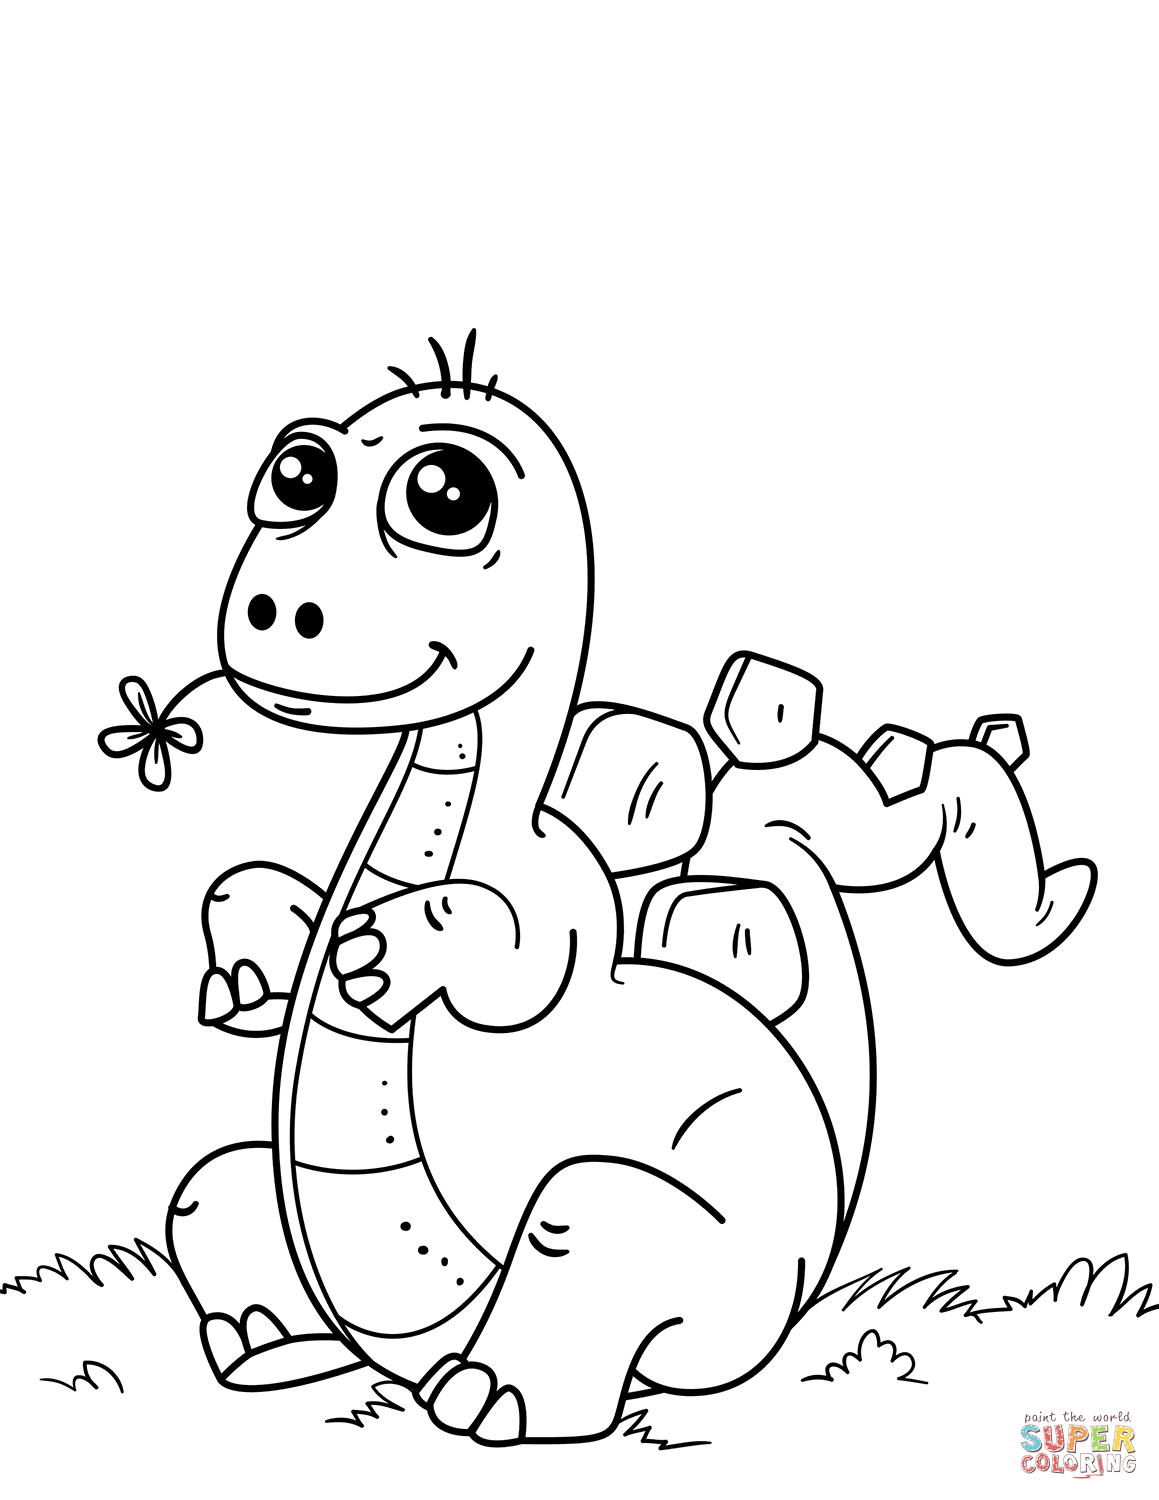 dinosaur colouring pages printable free printable dinosaur coloring pages for kids pages colouring printable dinosaur